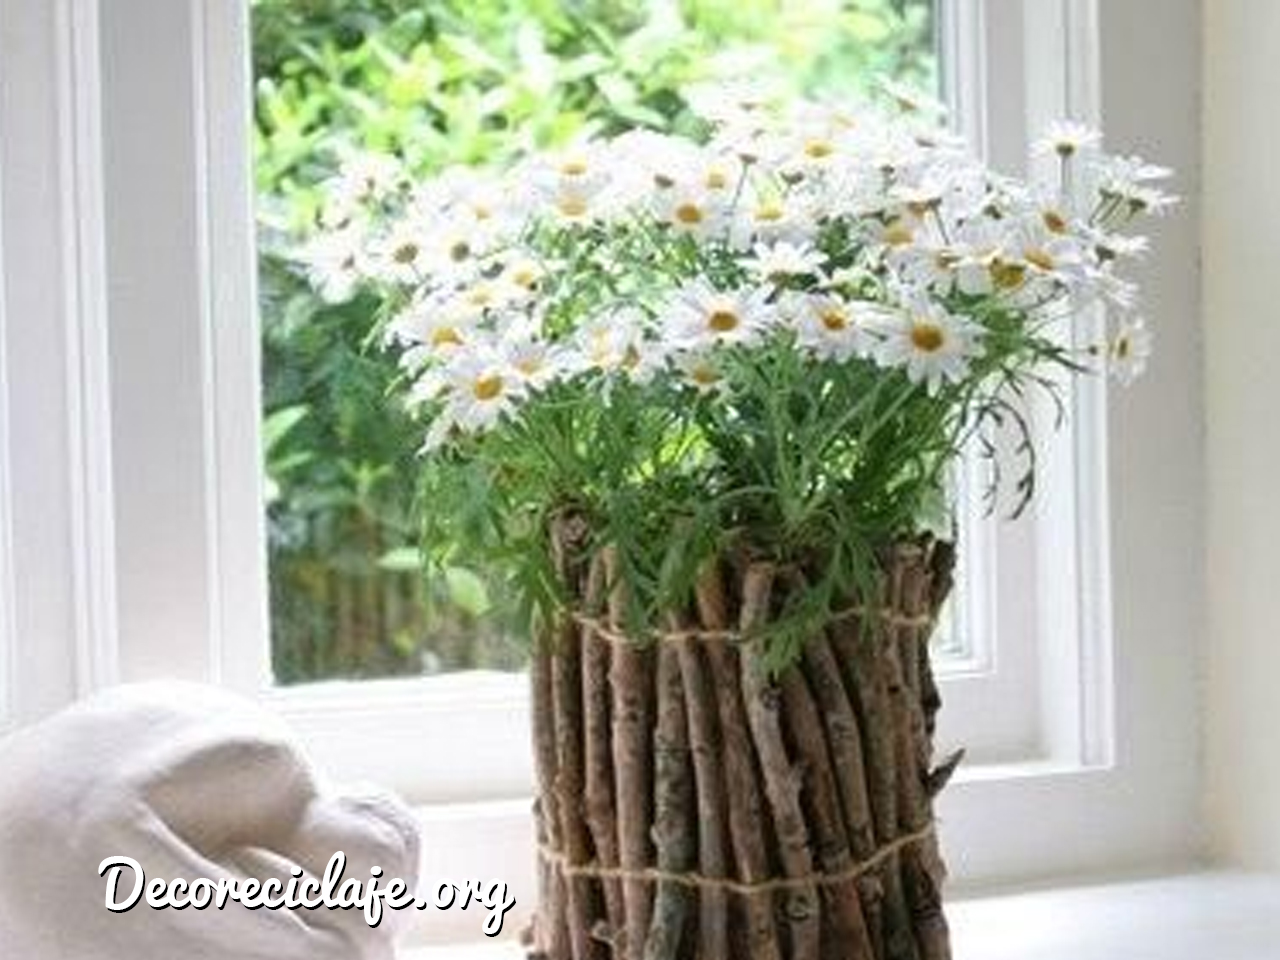 9 ideas de decoraciones recicladas para el hogar top 2018 for Ideas para decorar la casa con material reciclado